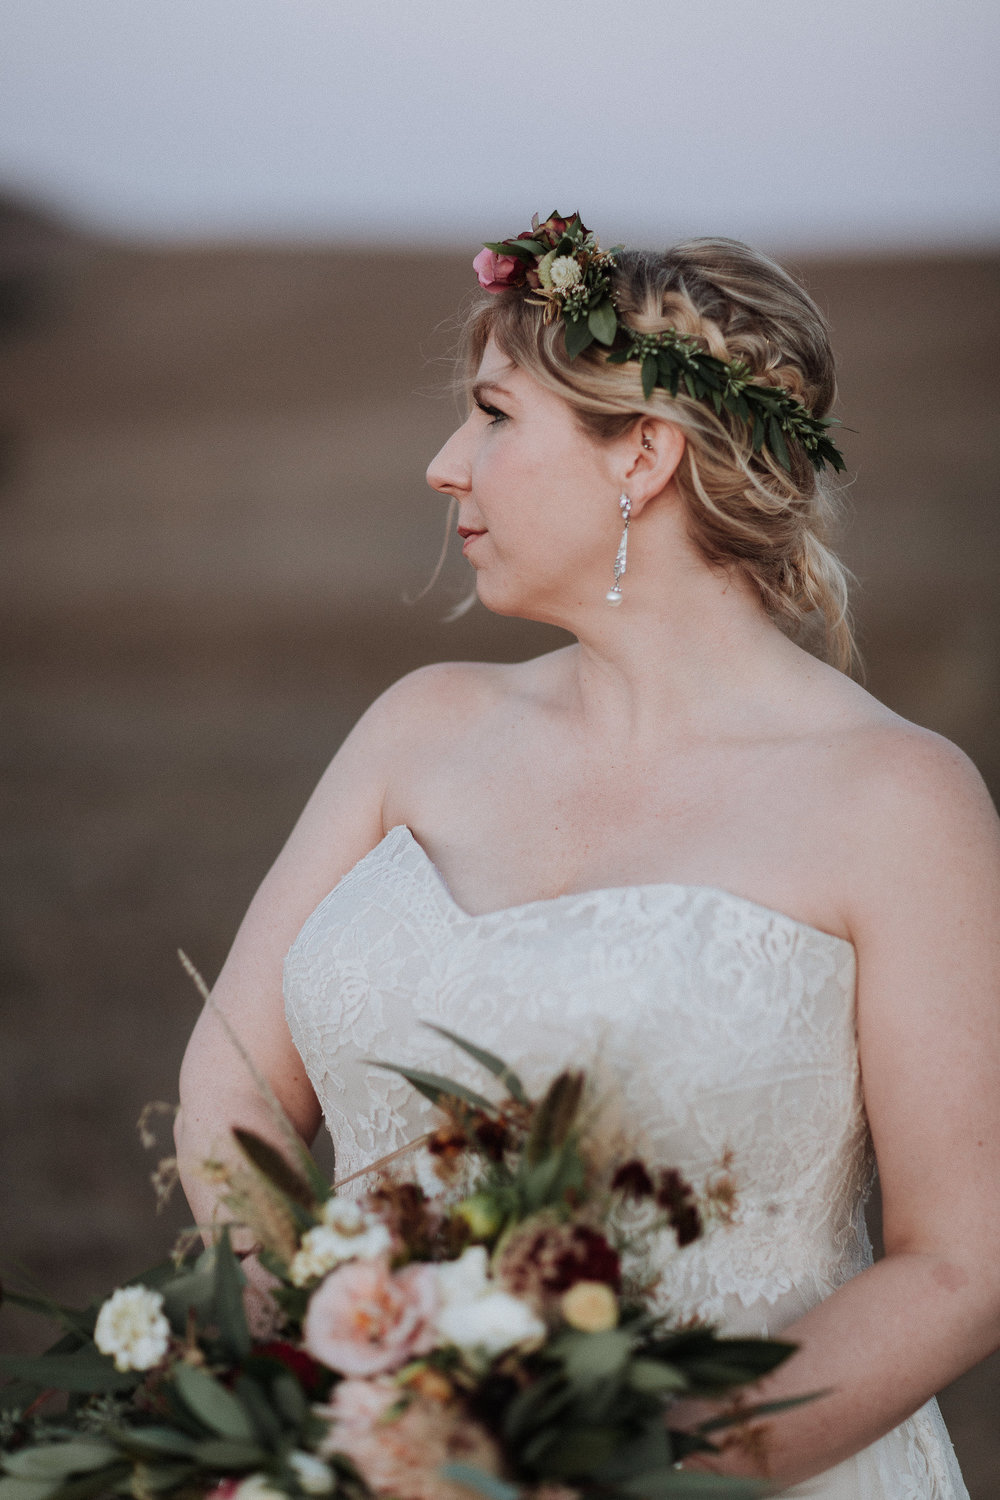 Minimal and elegant floral crown with pops of color and elegant greenery by Venn Floral photographed by Gretchen Gause at Olympia's Valley Estate.